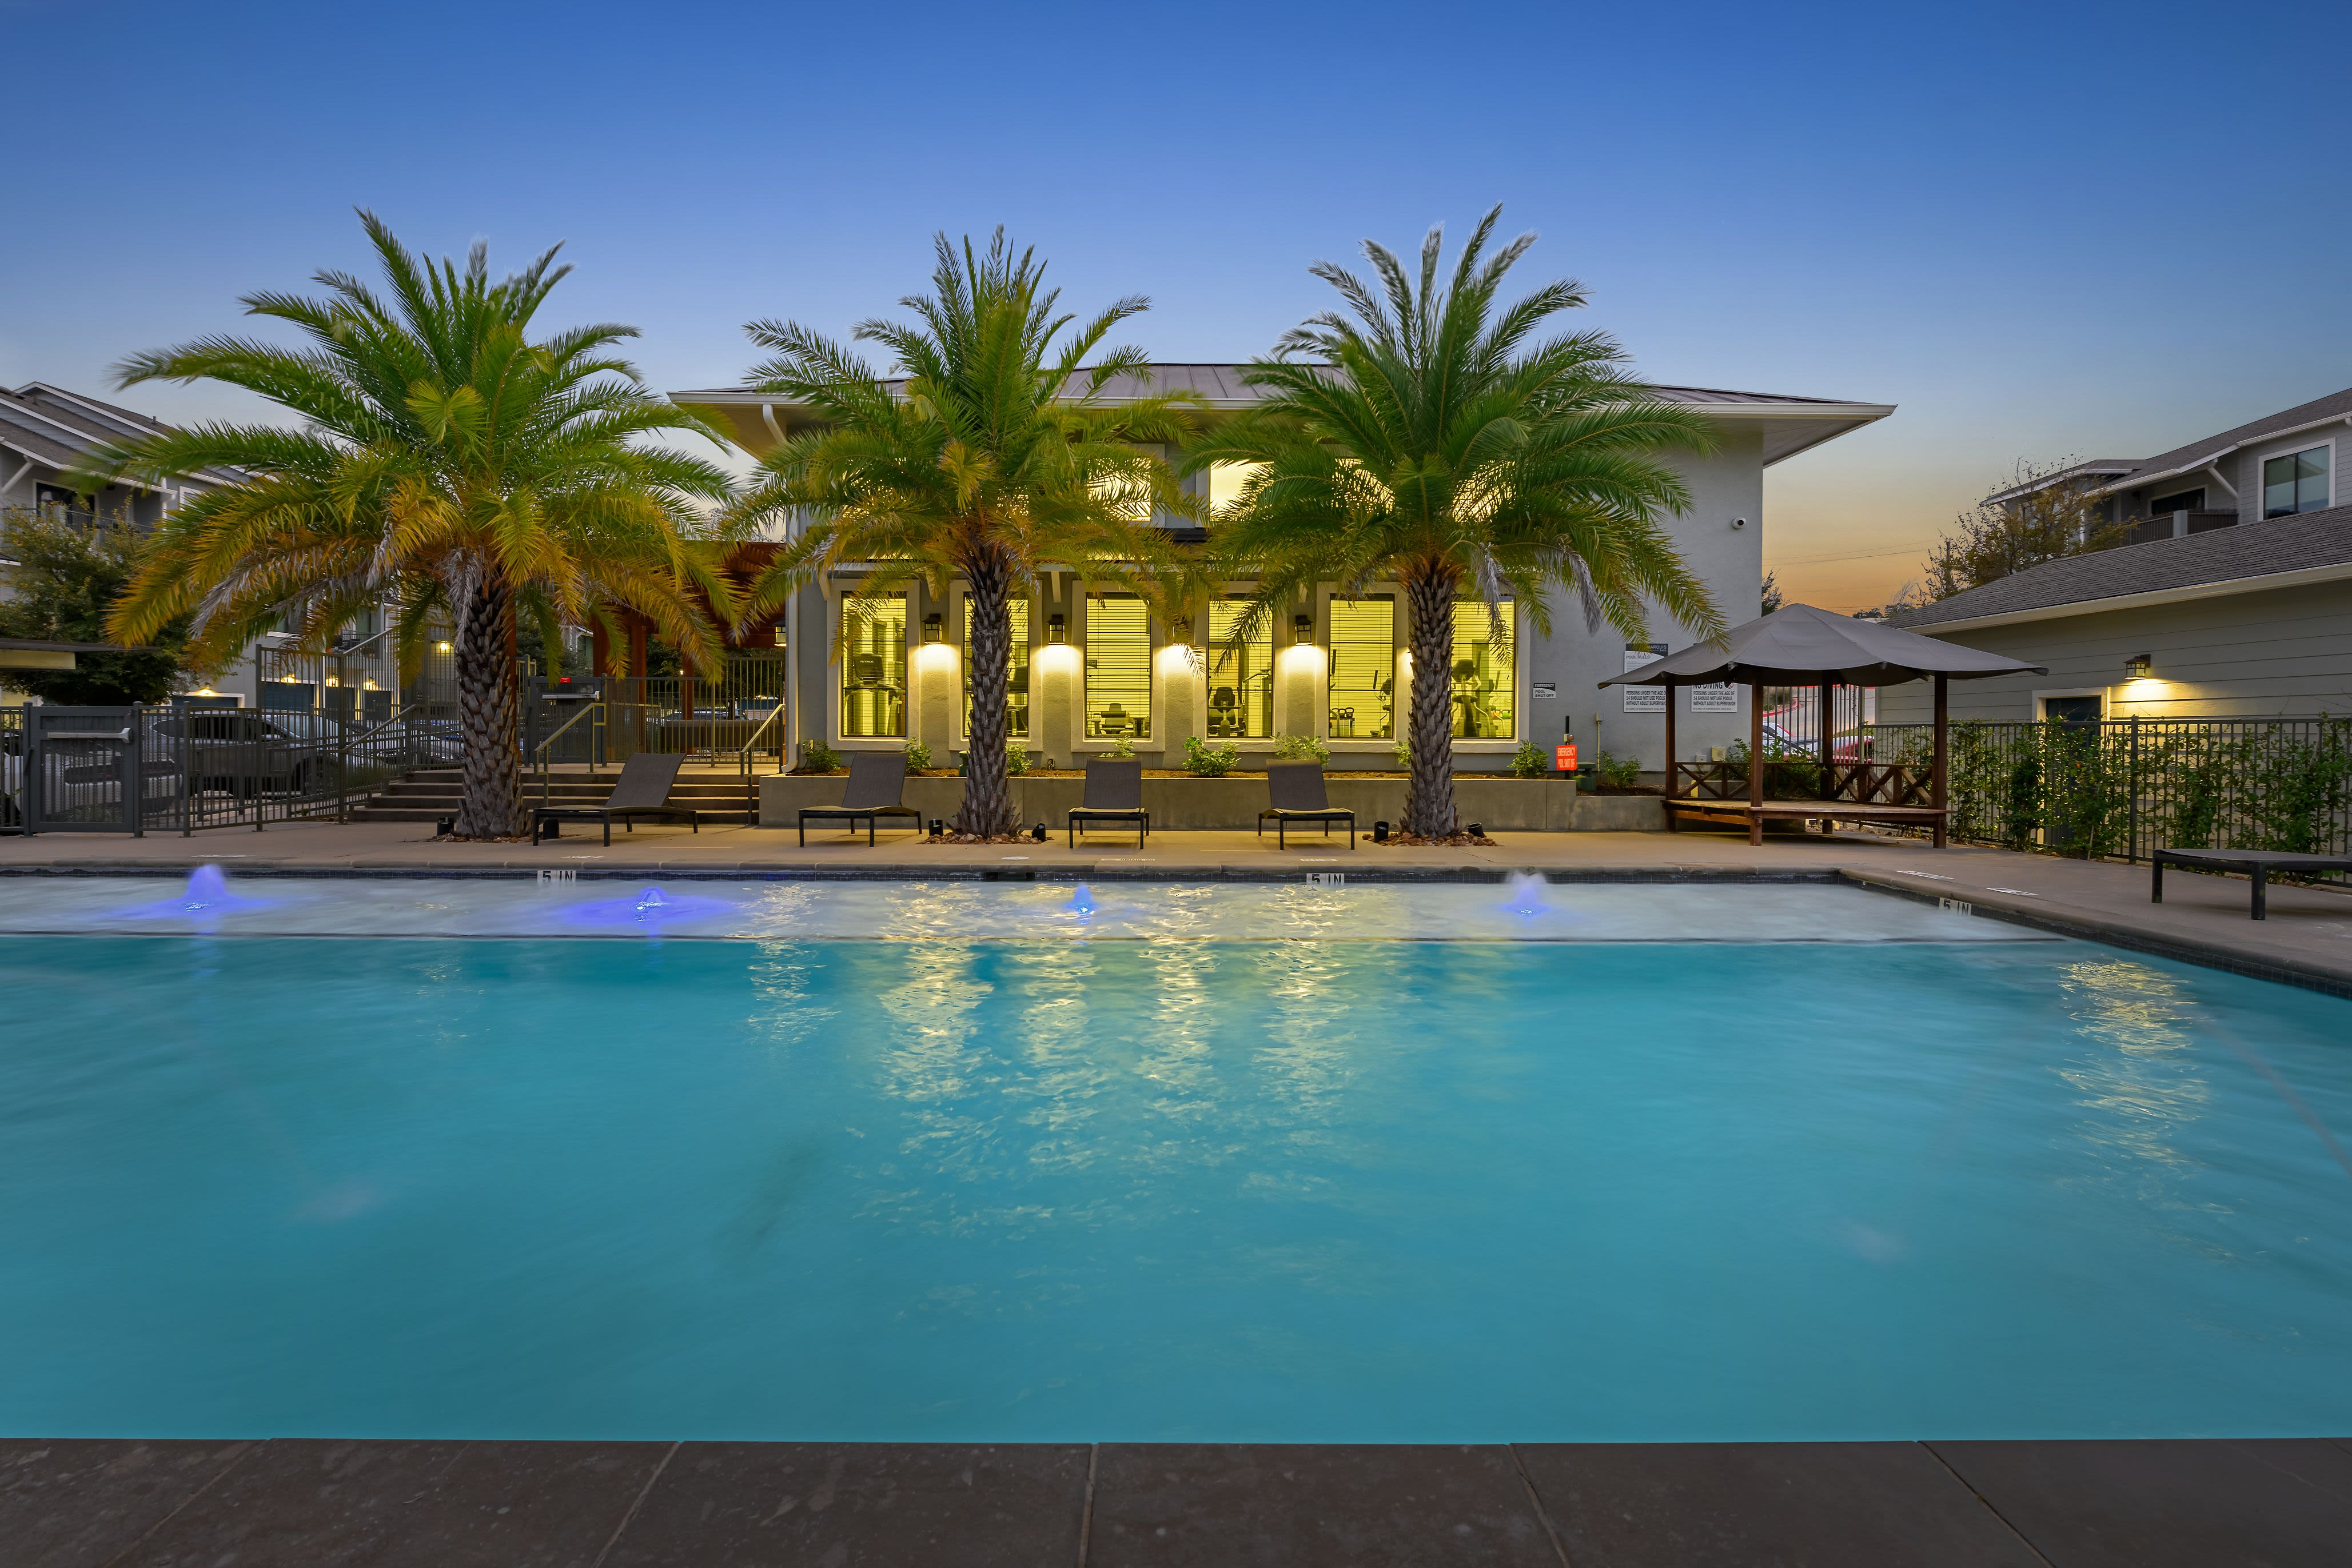 Swimming pool with palm trees at dusk at Marquis SoCo in Austin, Texas